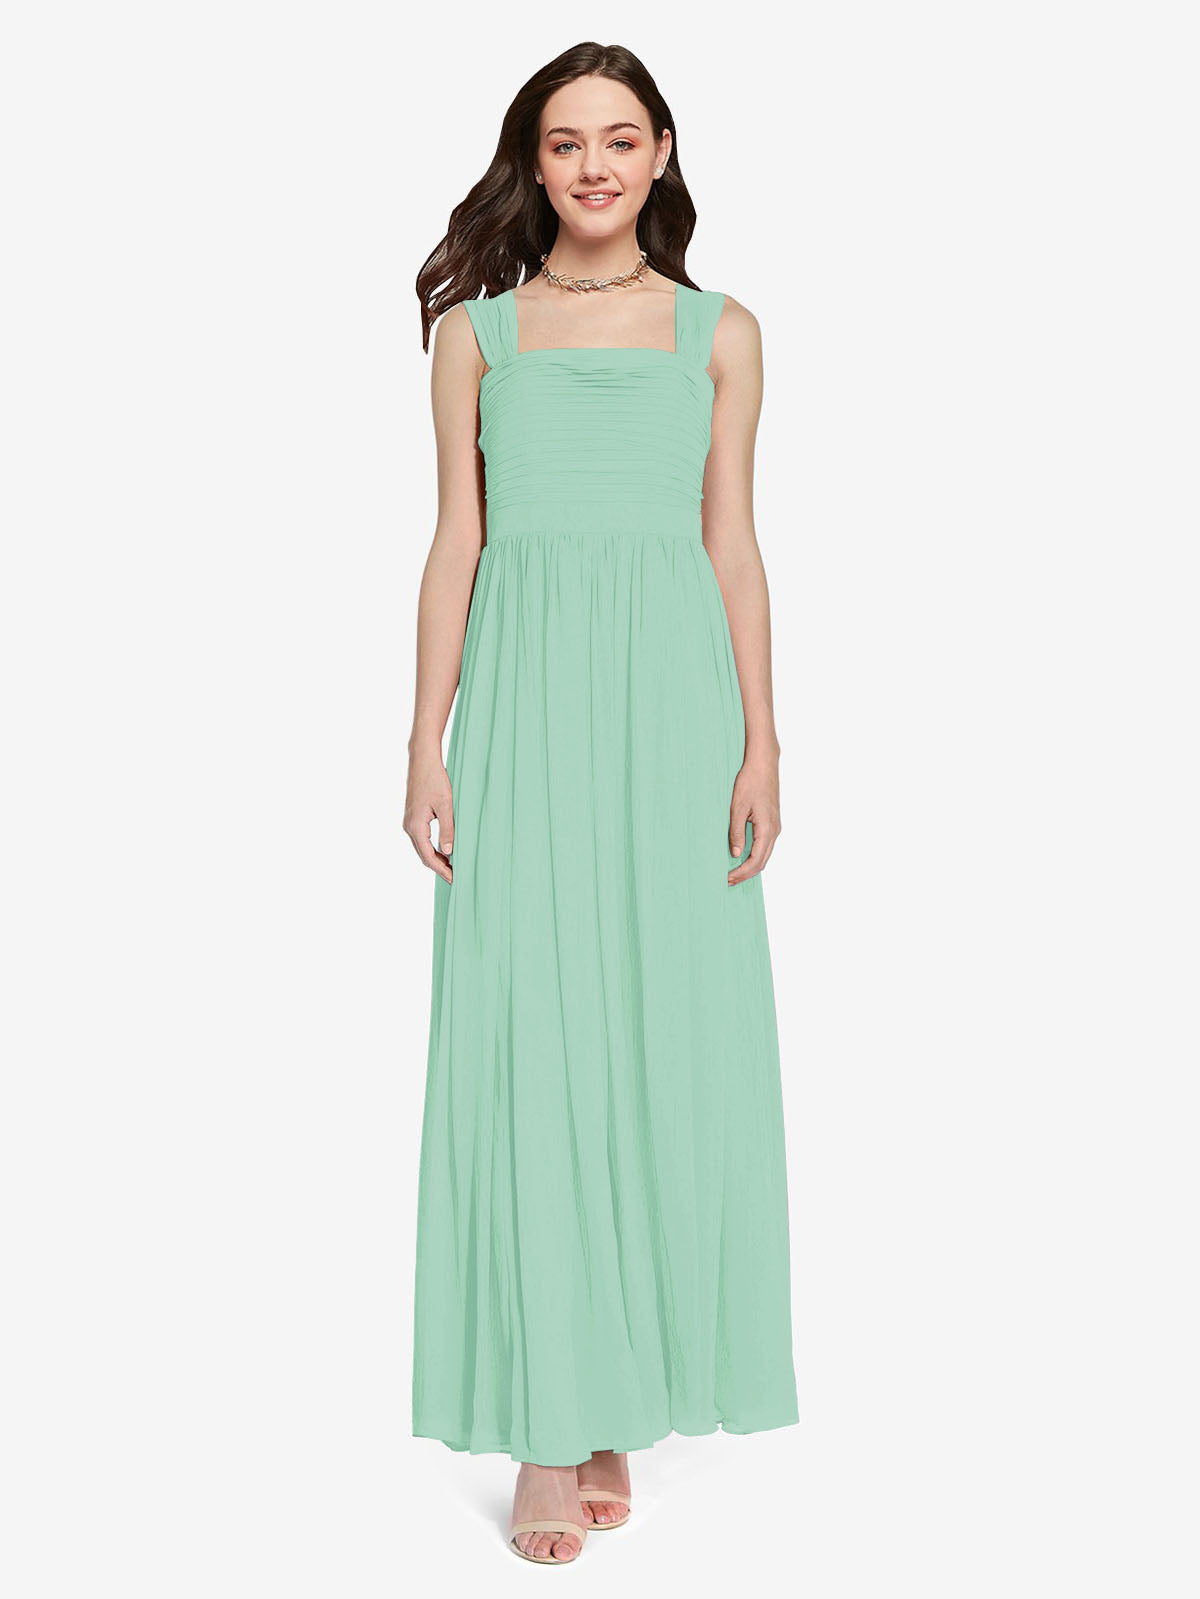 Long A-Line Square Sleeveless Mint Green Chiffon Bridesmaid Dress Aldridge